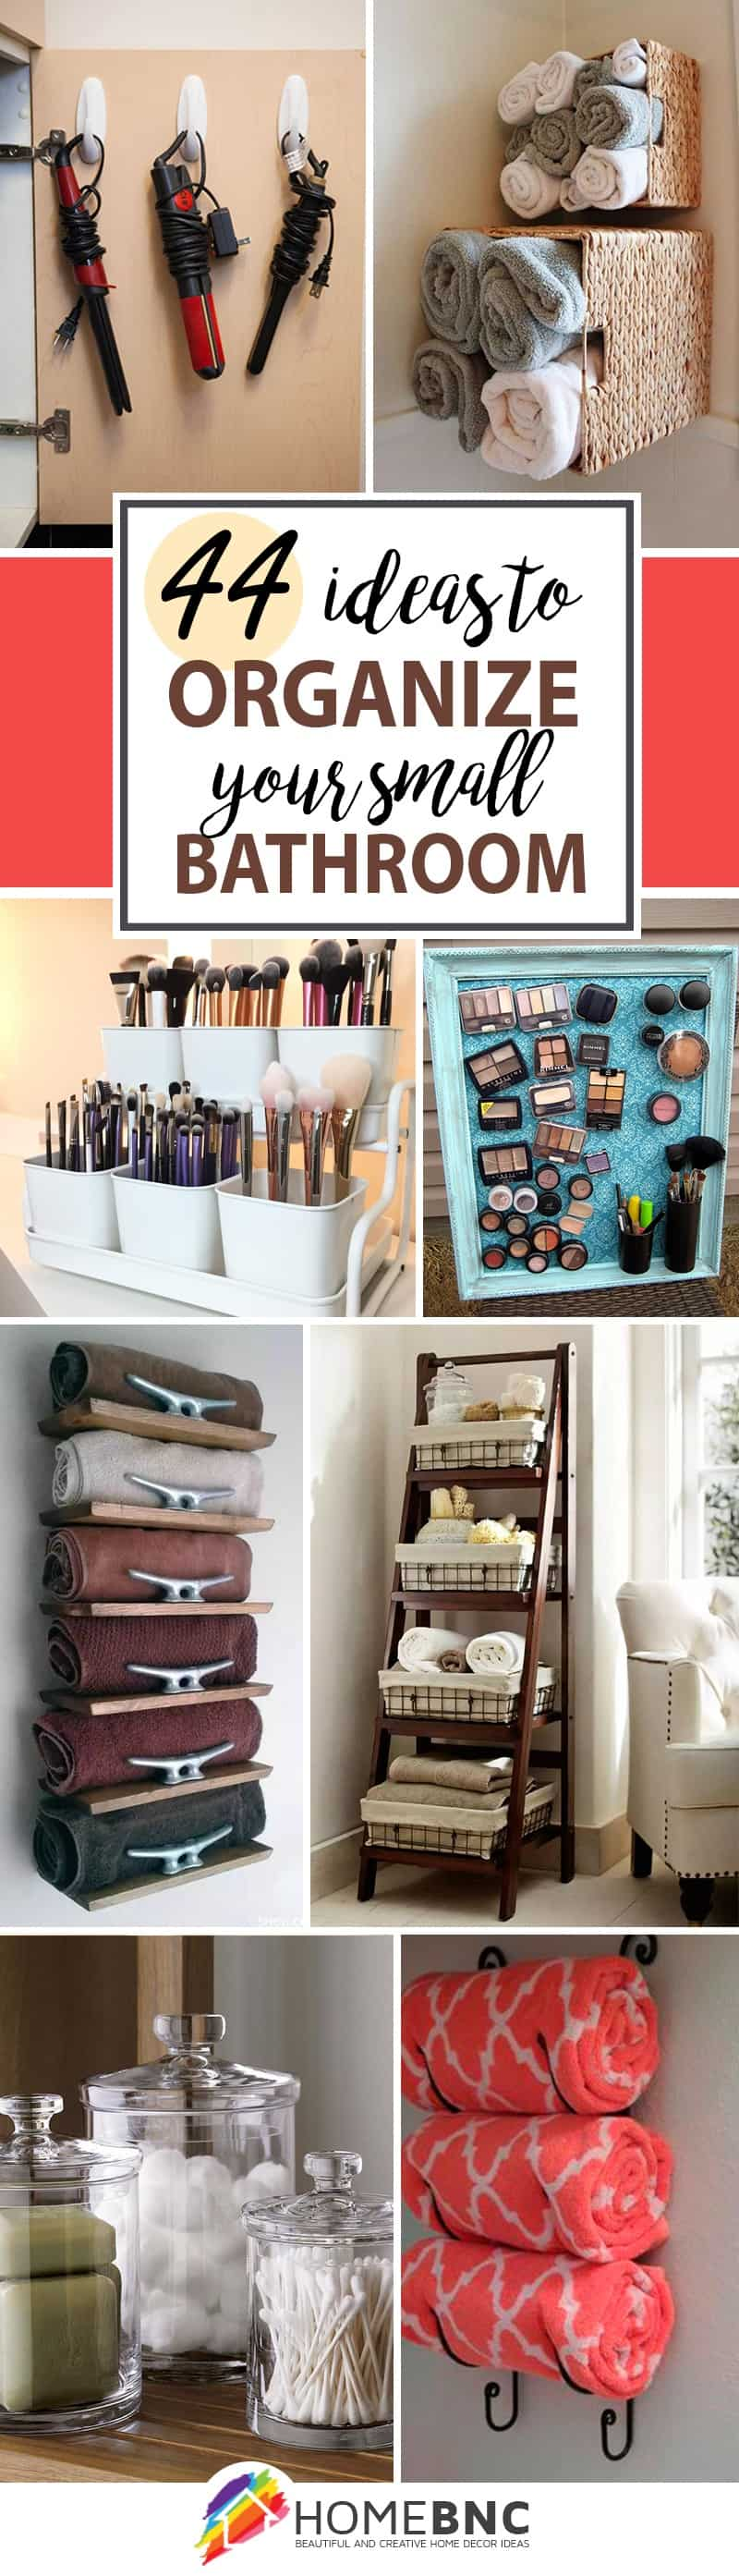 small-bathroom-storage-ideas-pinterest-share-homebnc-v2